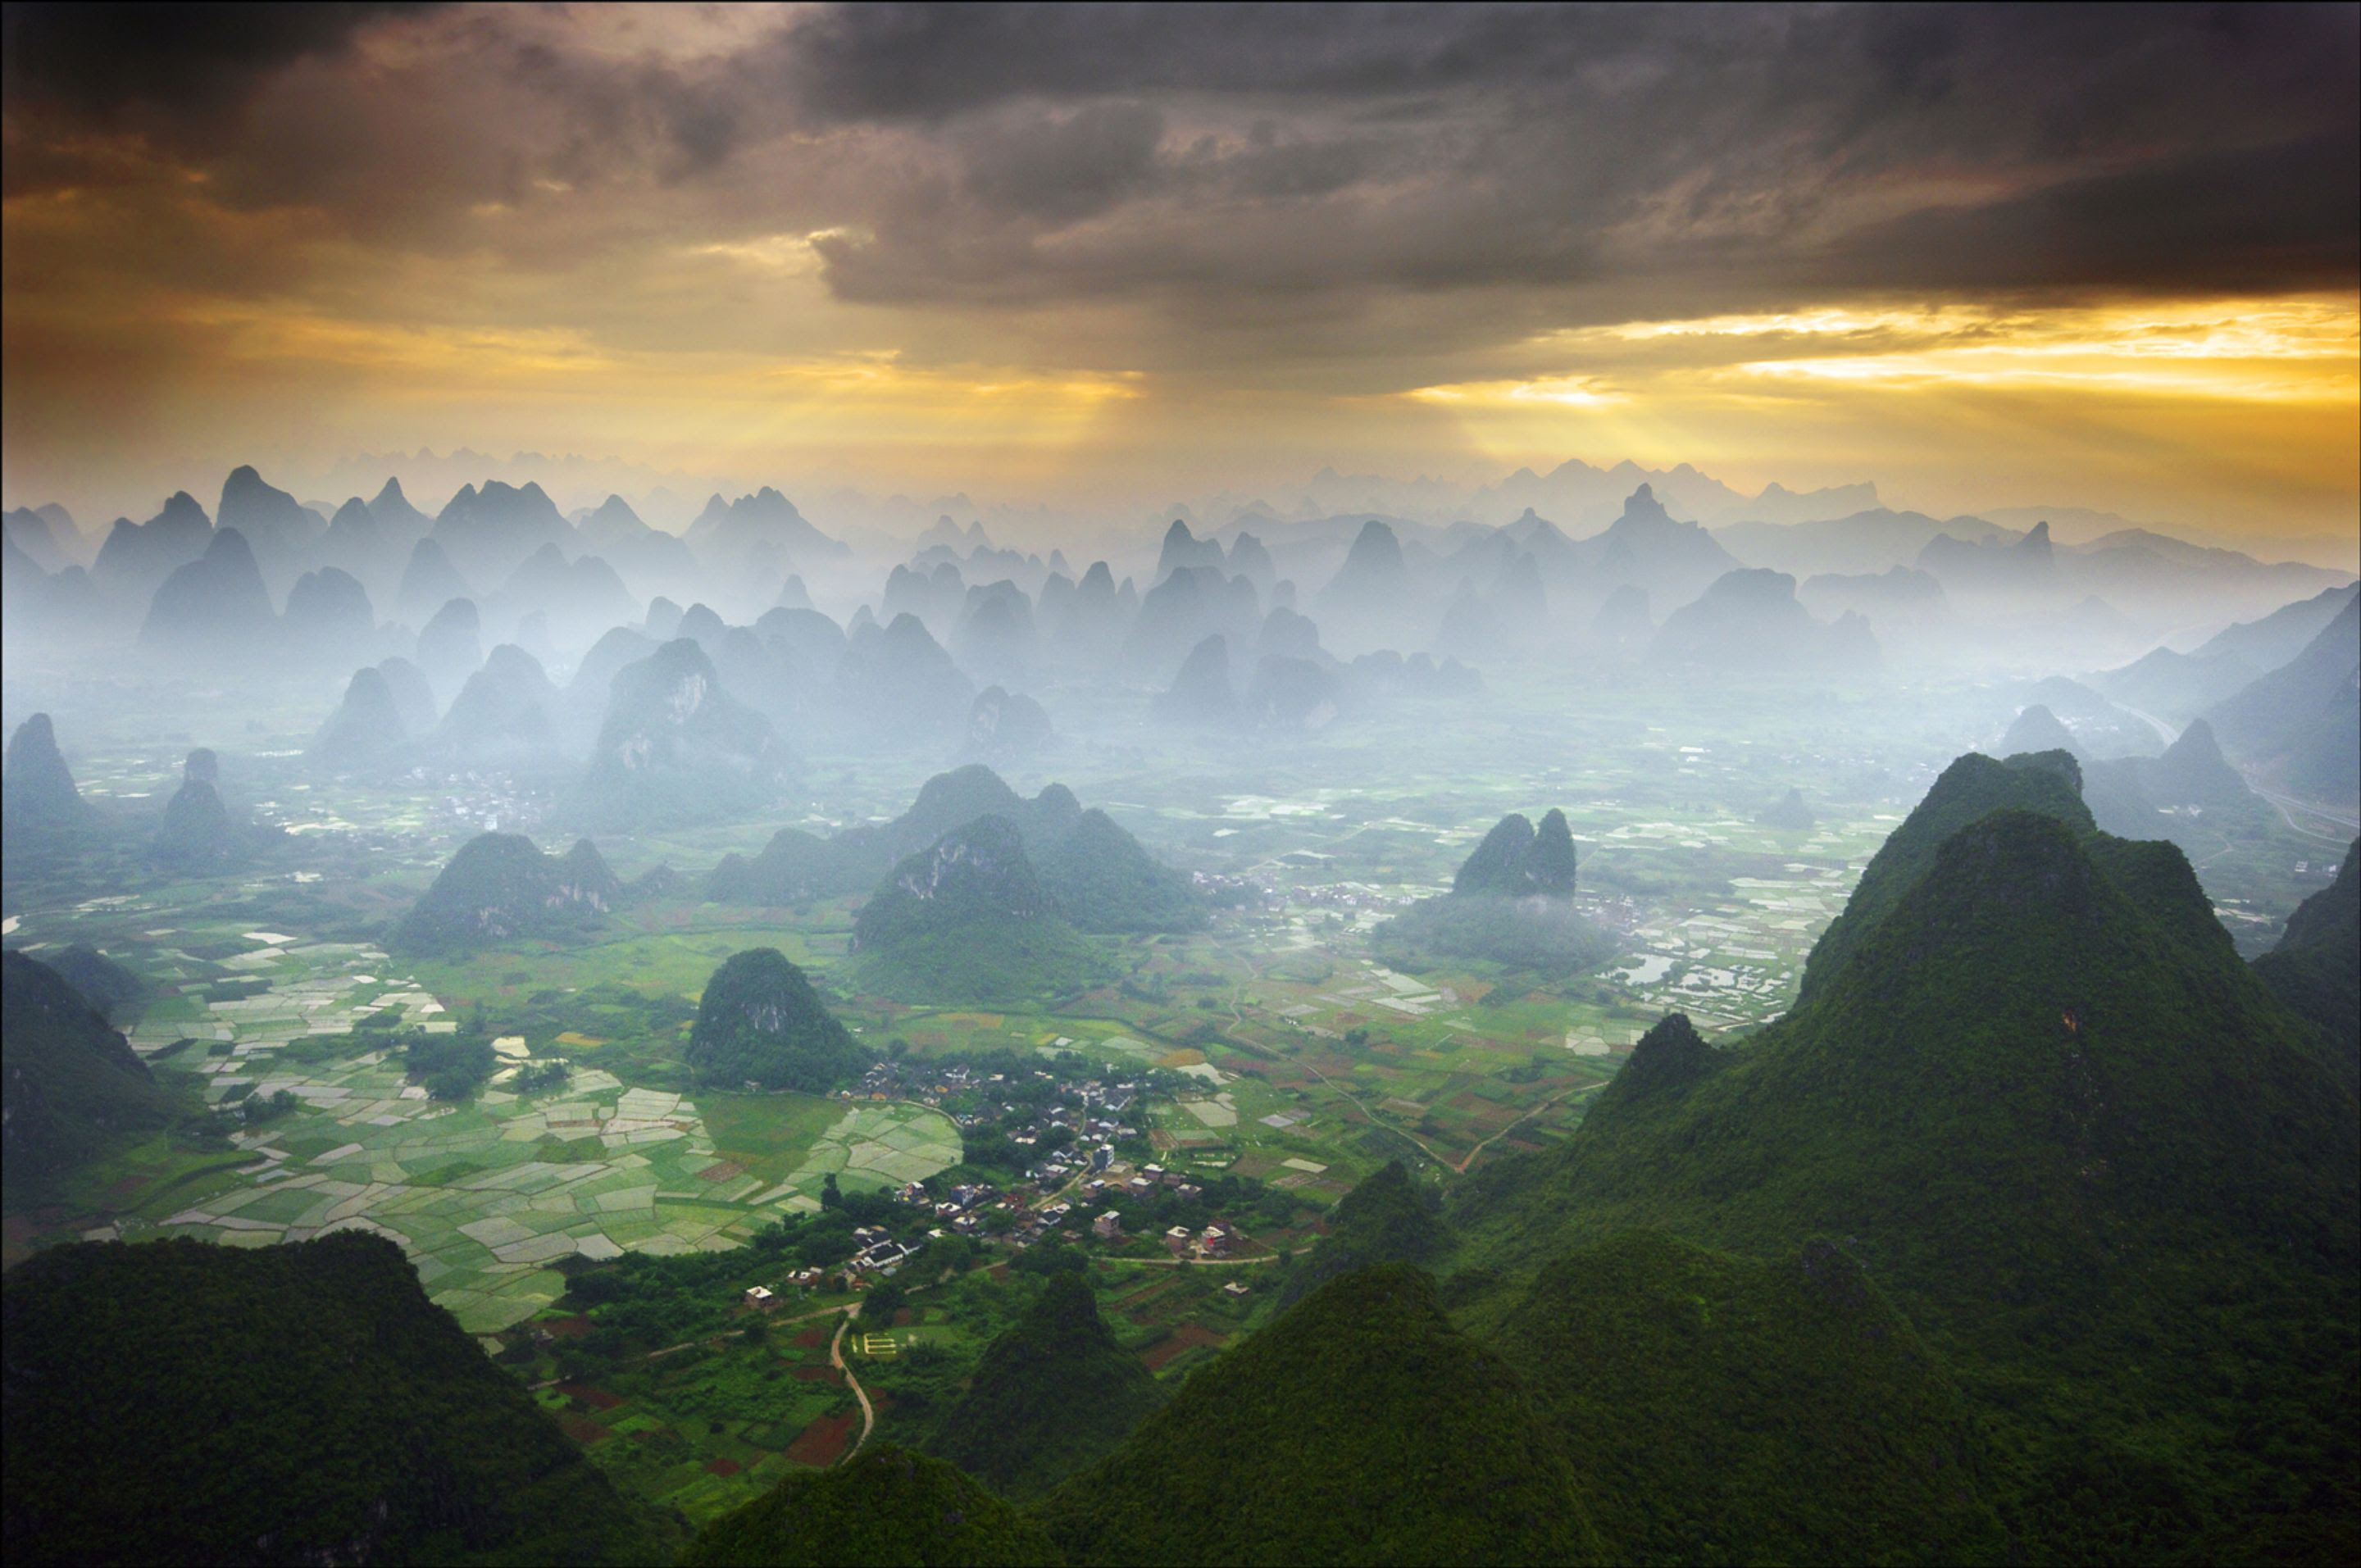 view of province of yangshuo from hot air balloon